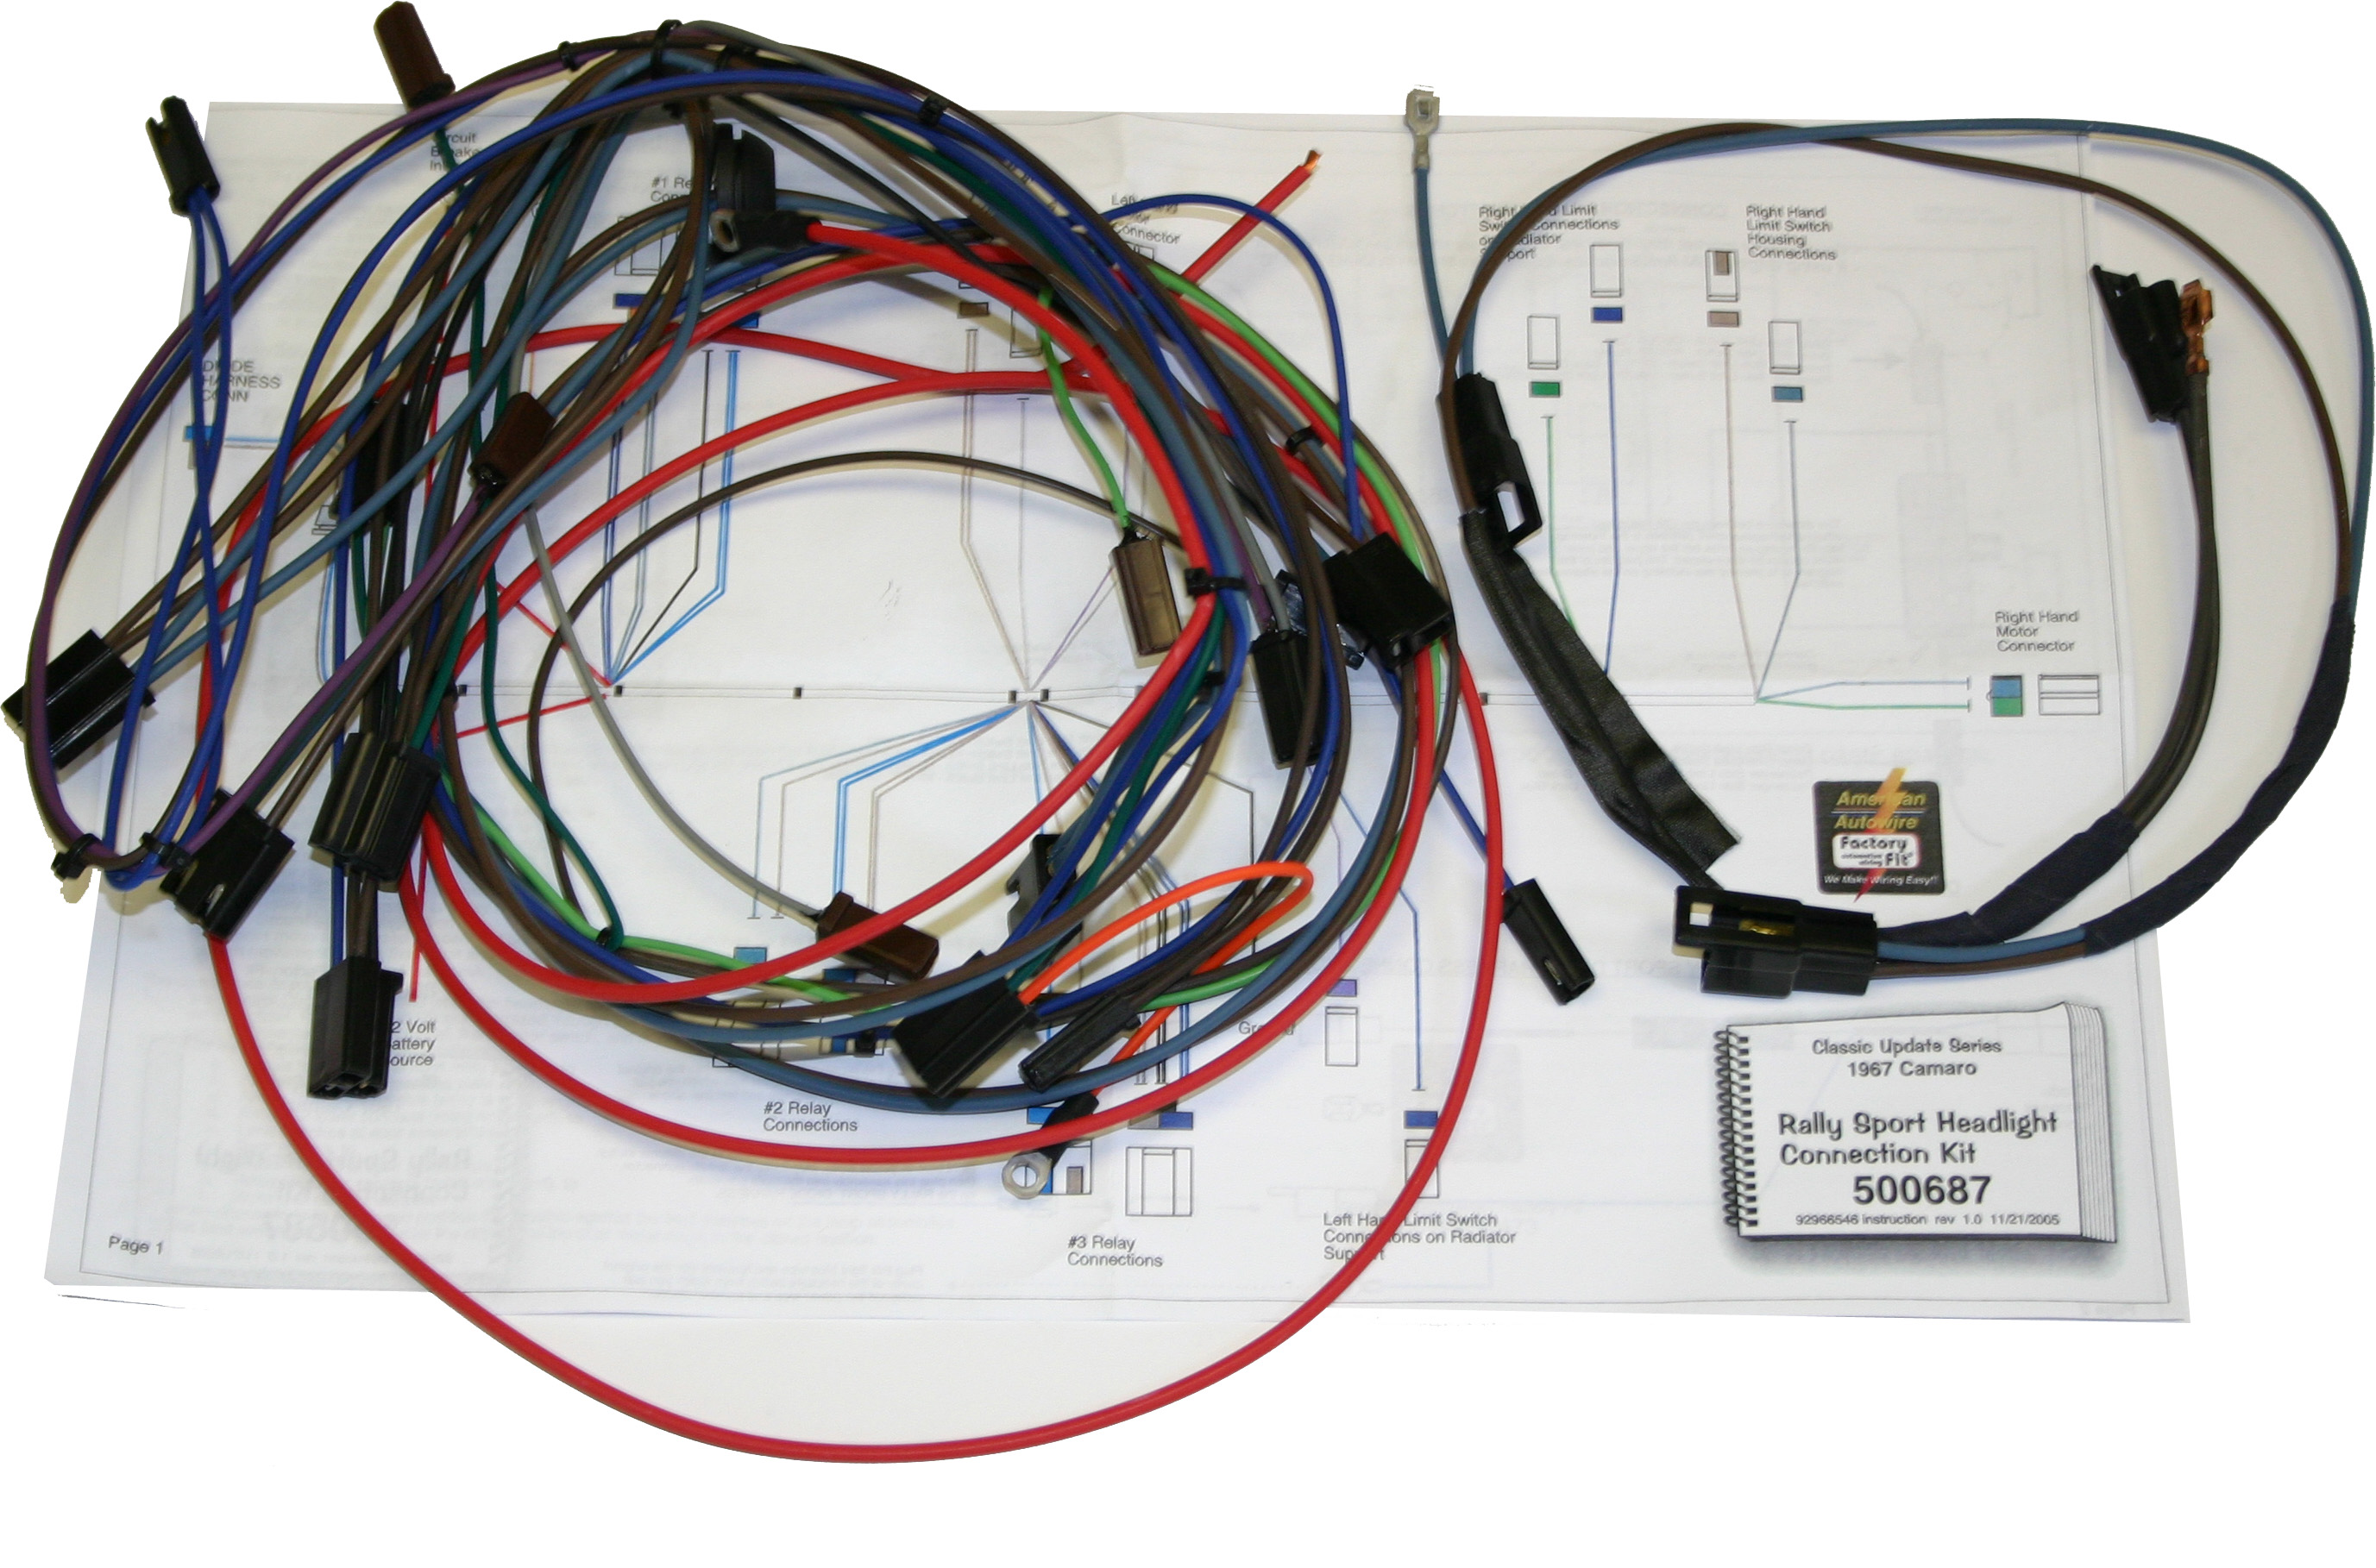 500773 67 68 camaro firebird classic update wiring harness 500661 painless wiring harness 68 camaro at creativeand.co